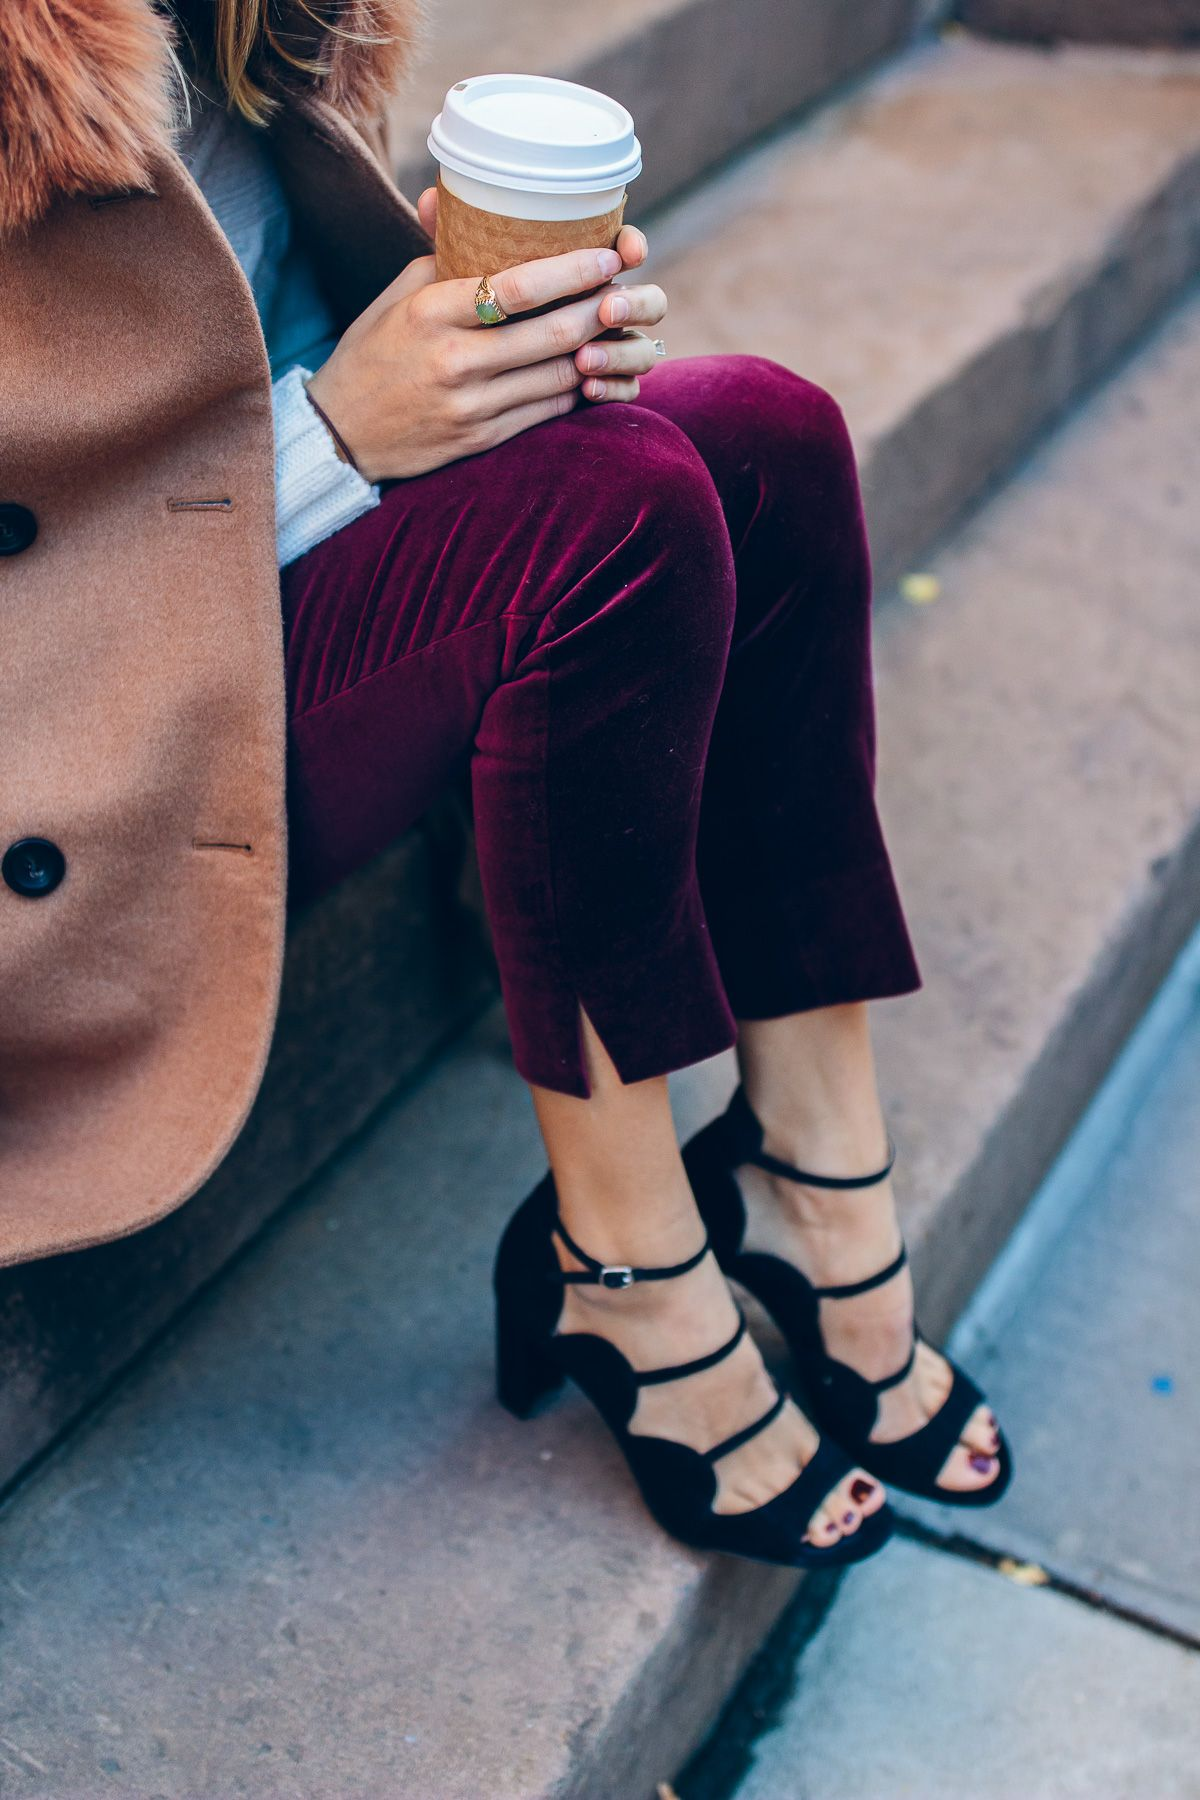 553d4f3e35 How to Style a Cable Knit Sweater | Fox & She Style | Chicago ...